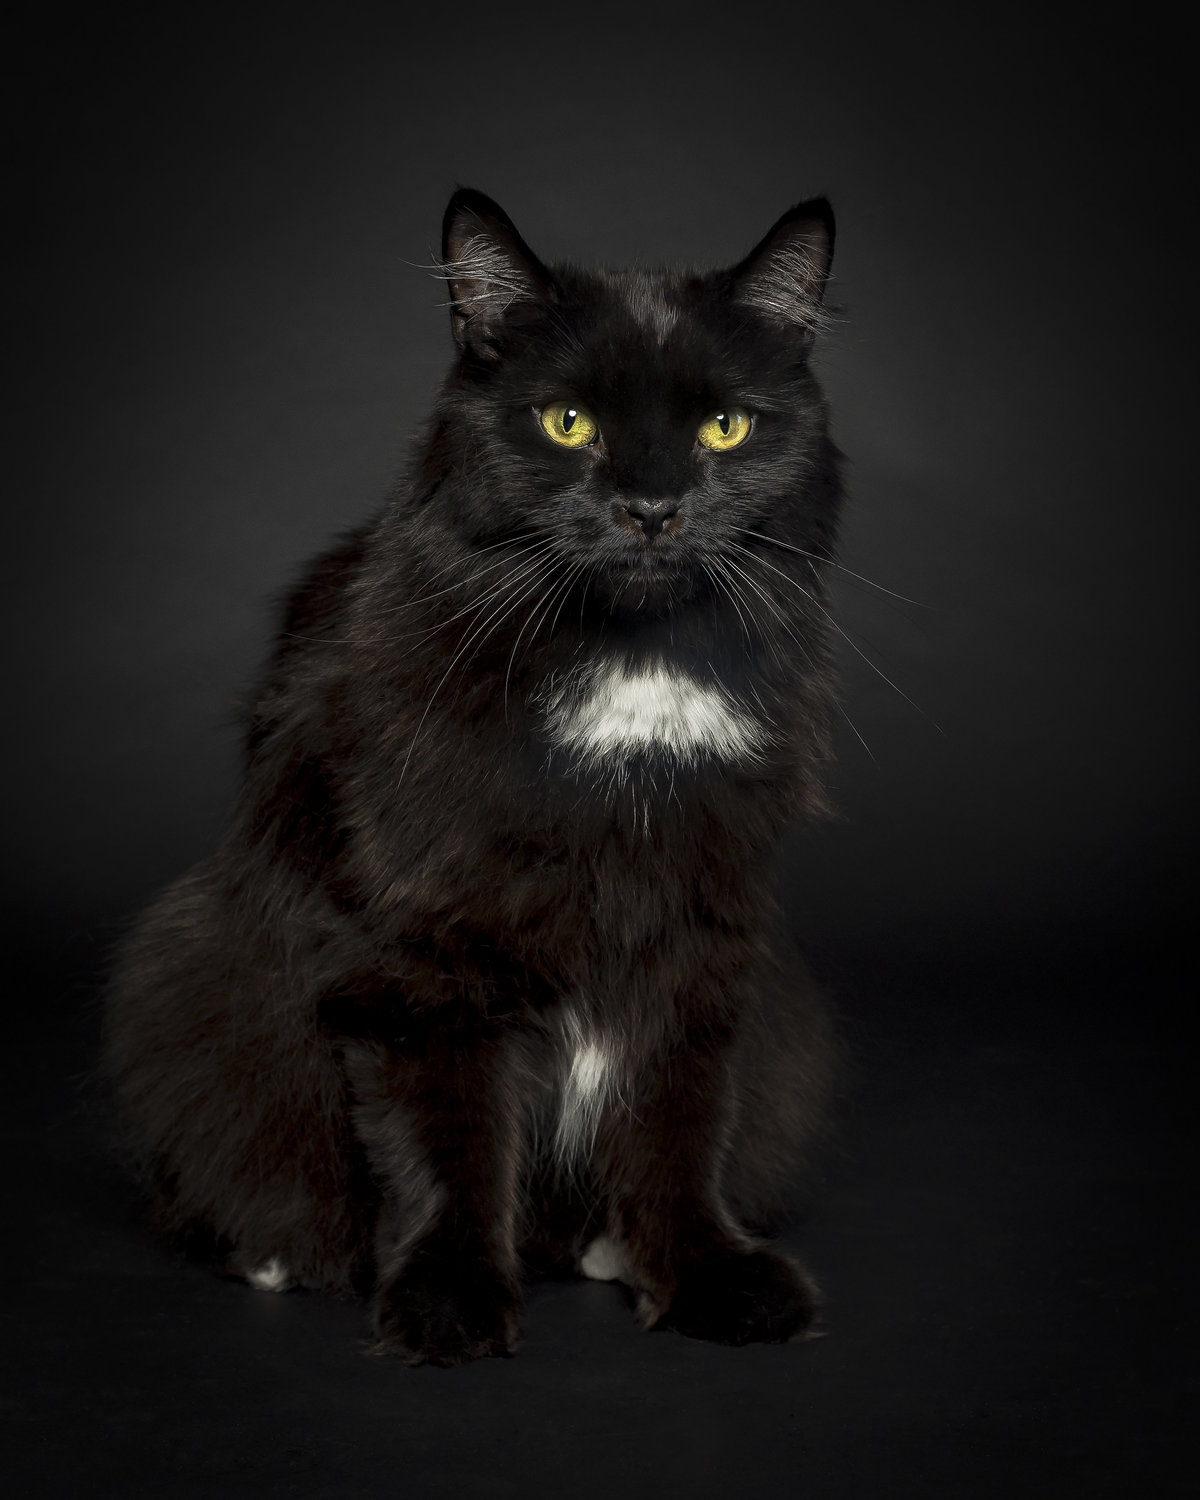 Black cat on a black background with gold eyes and white chest